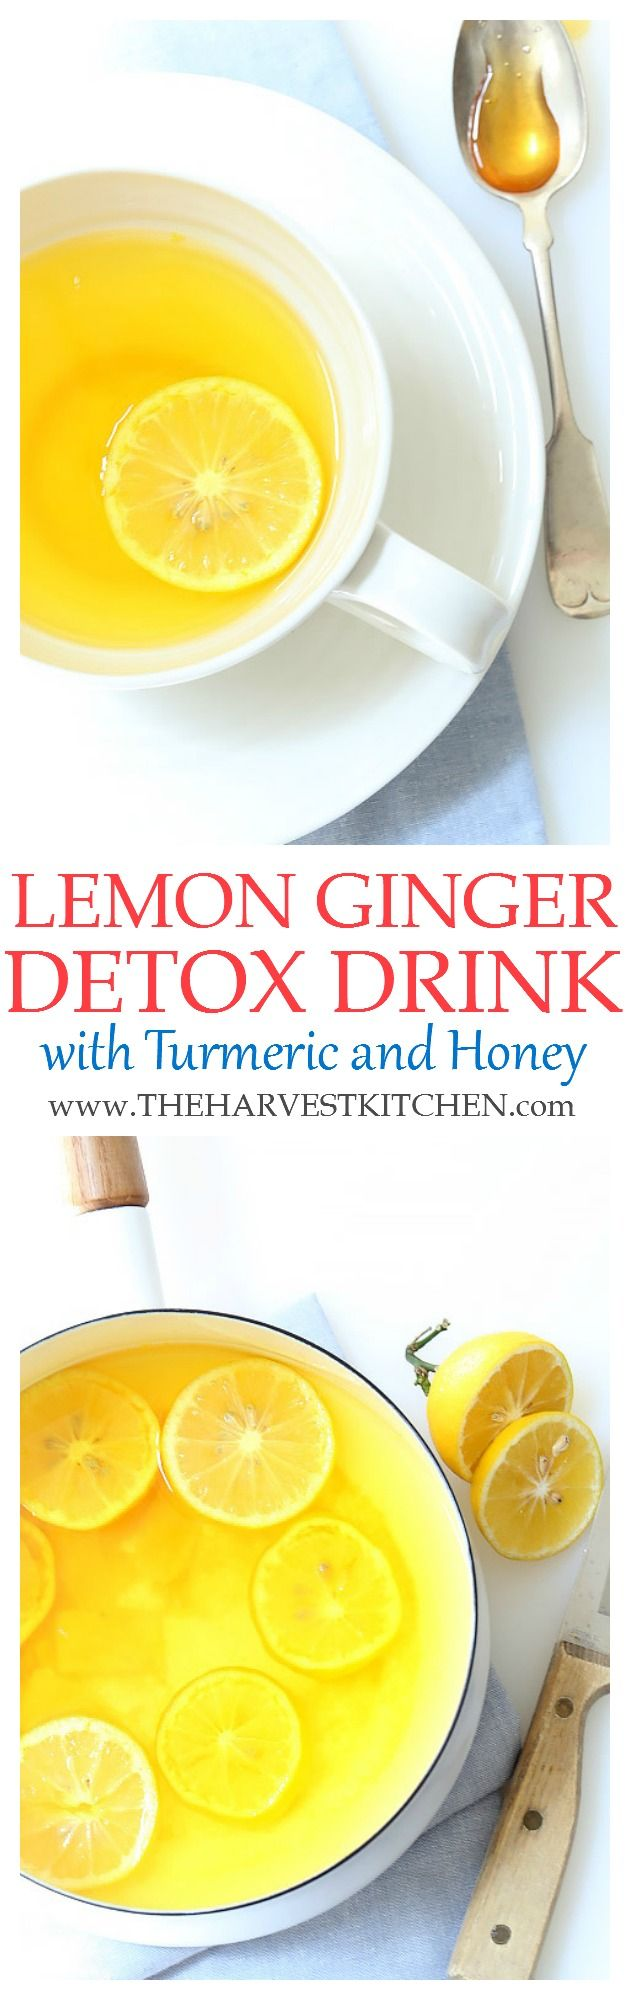 This Lemon Ginger Morning Detox Drink with Turmeric is a great way to start your day.  This detox drink is rich in vitamin c and antioxidants and helps to gently cleanse and alkalize the body.